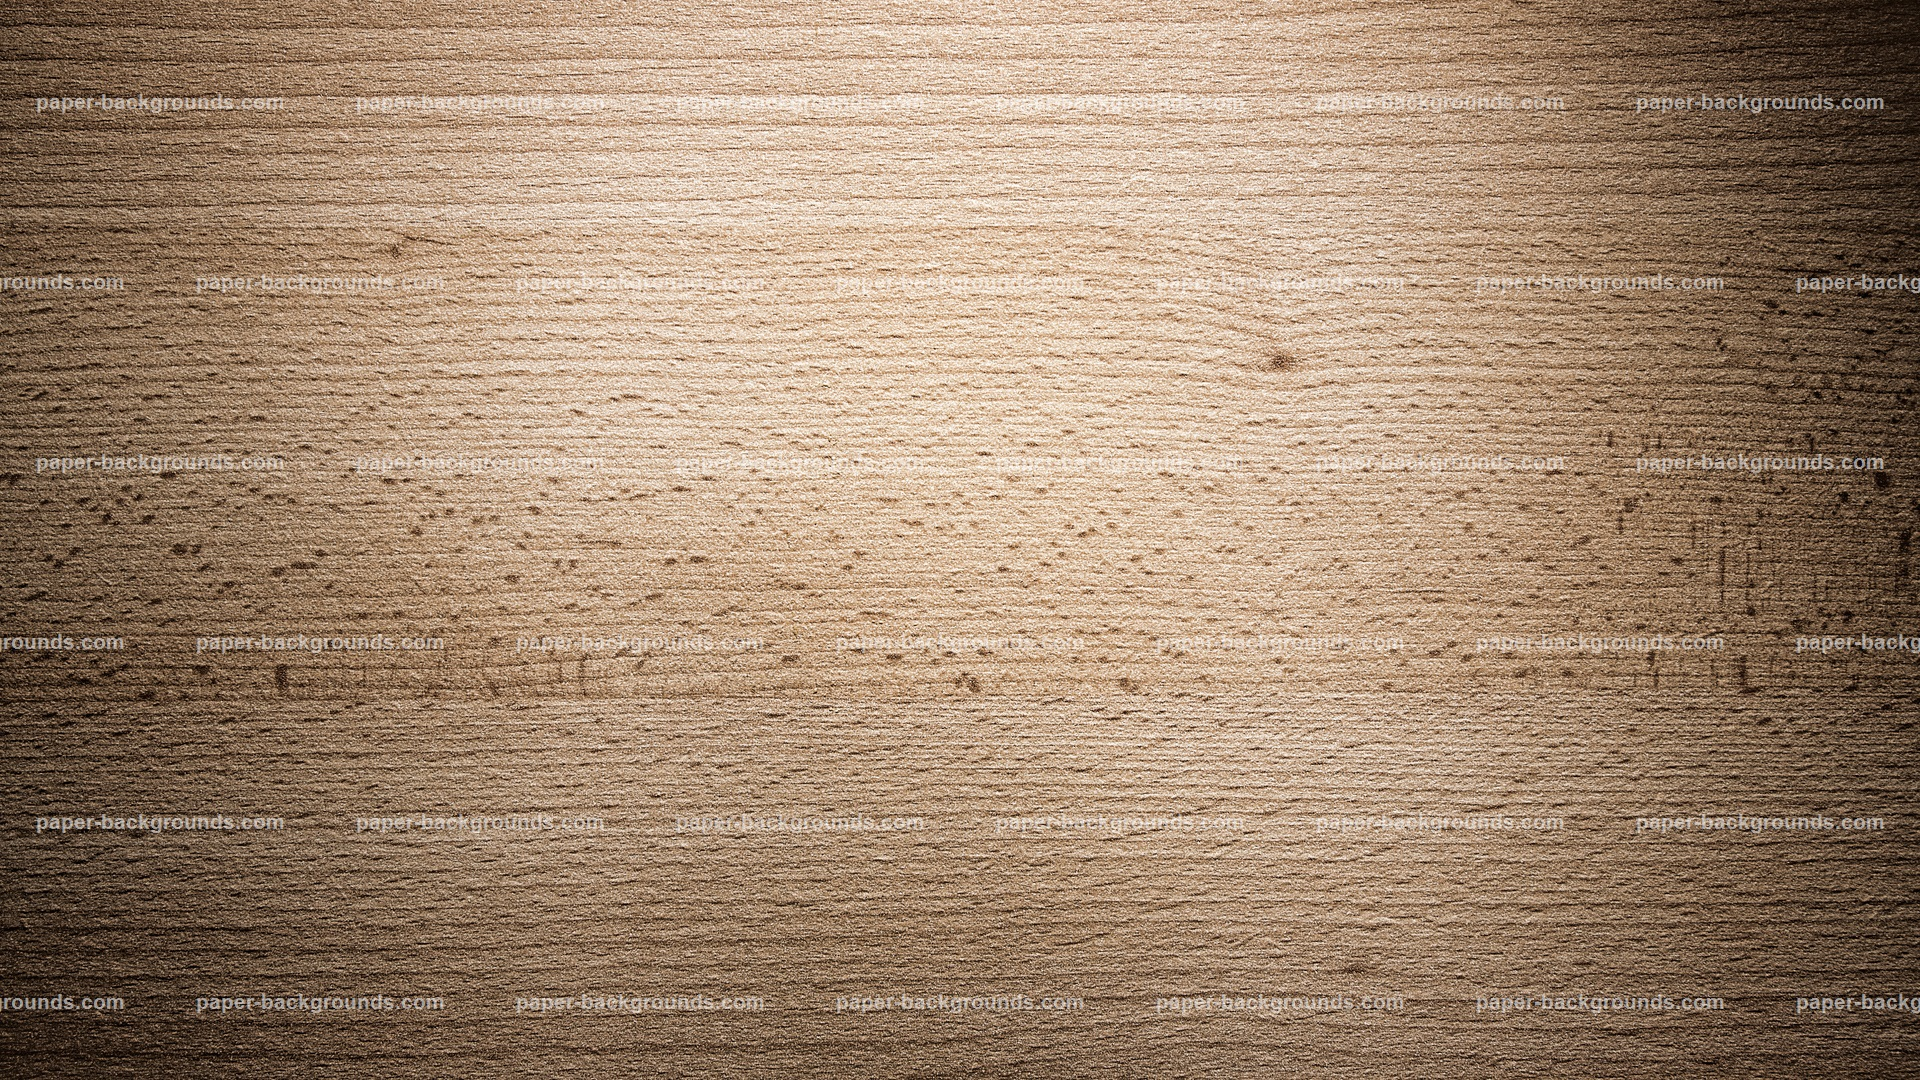 Embossed Wood Grain Texture Background HD